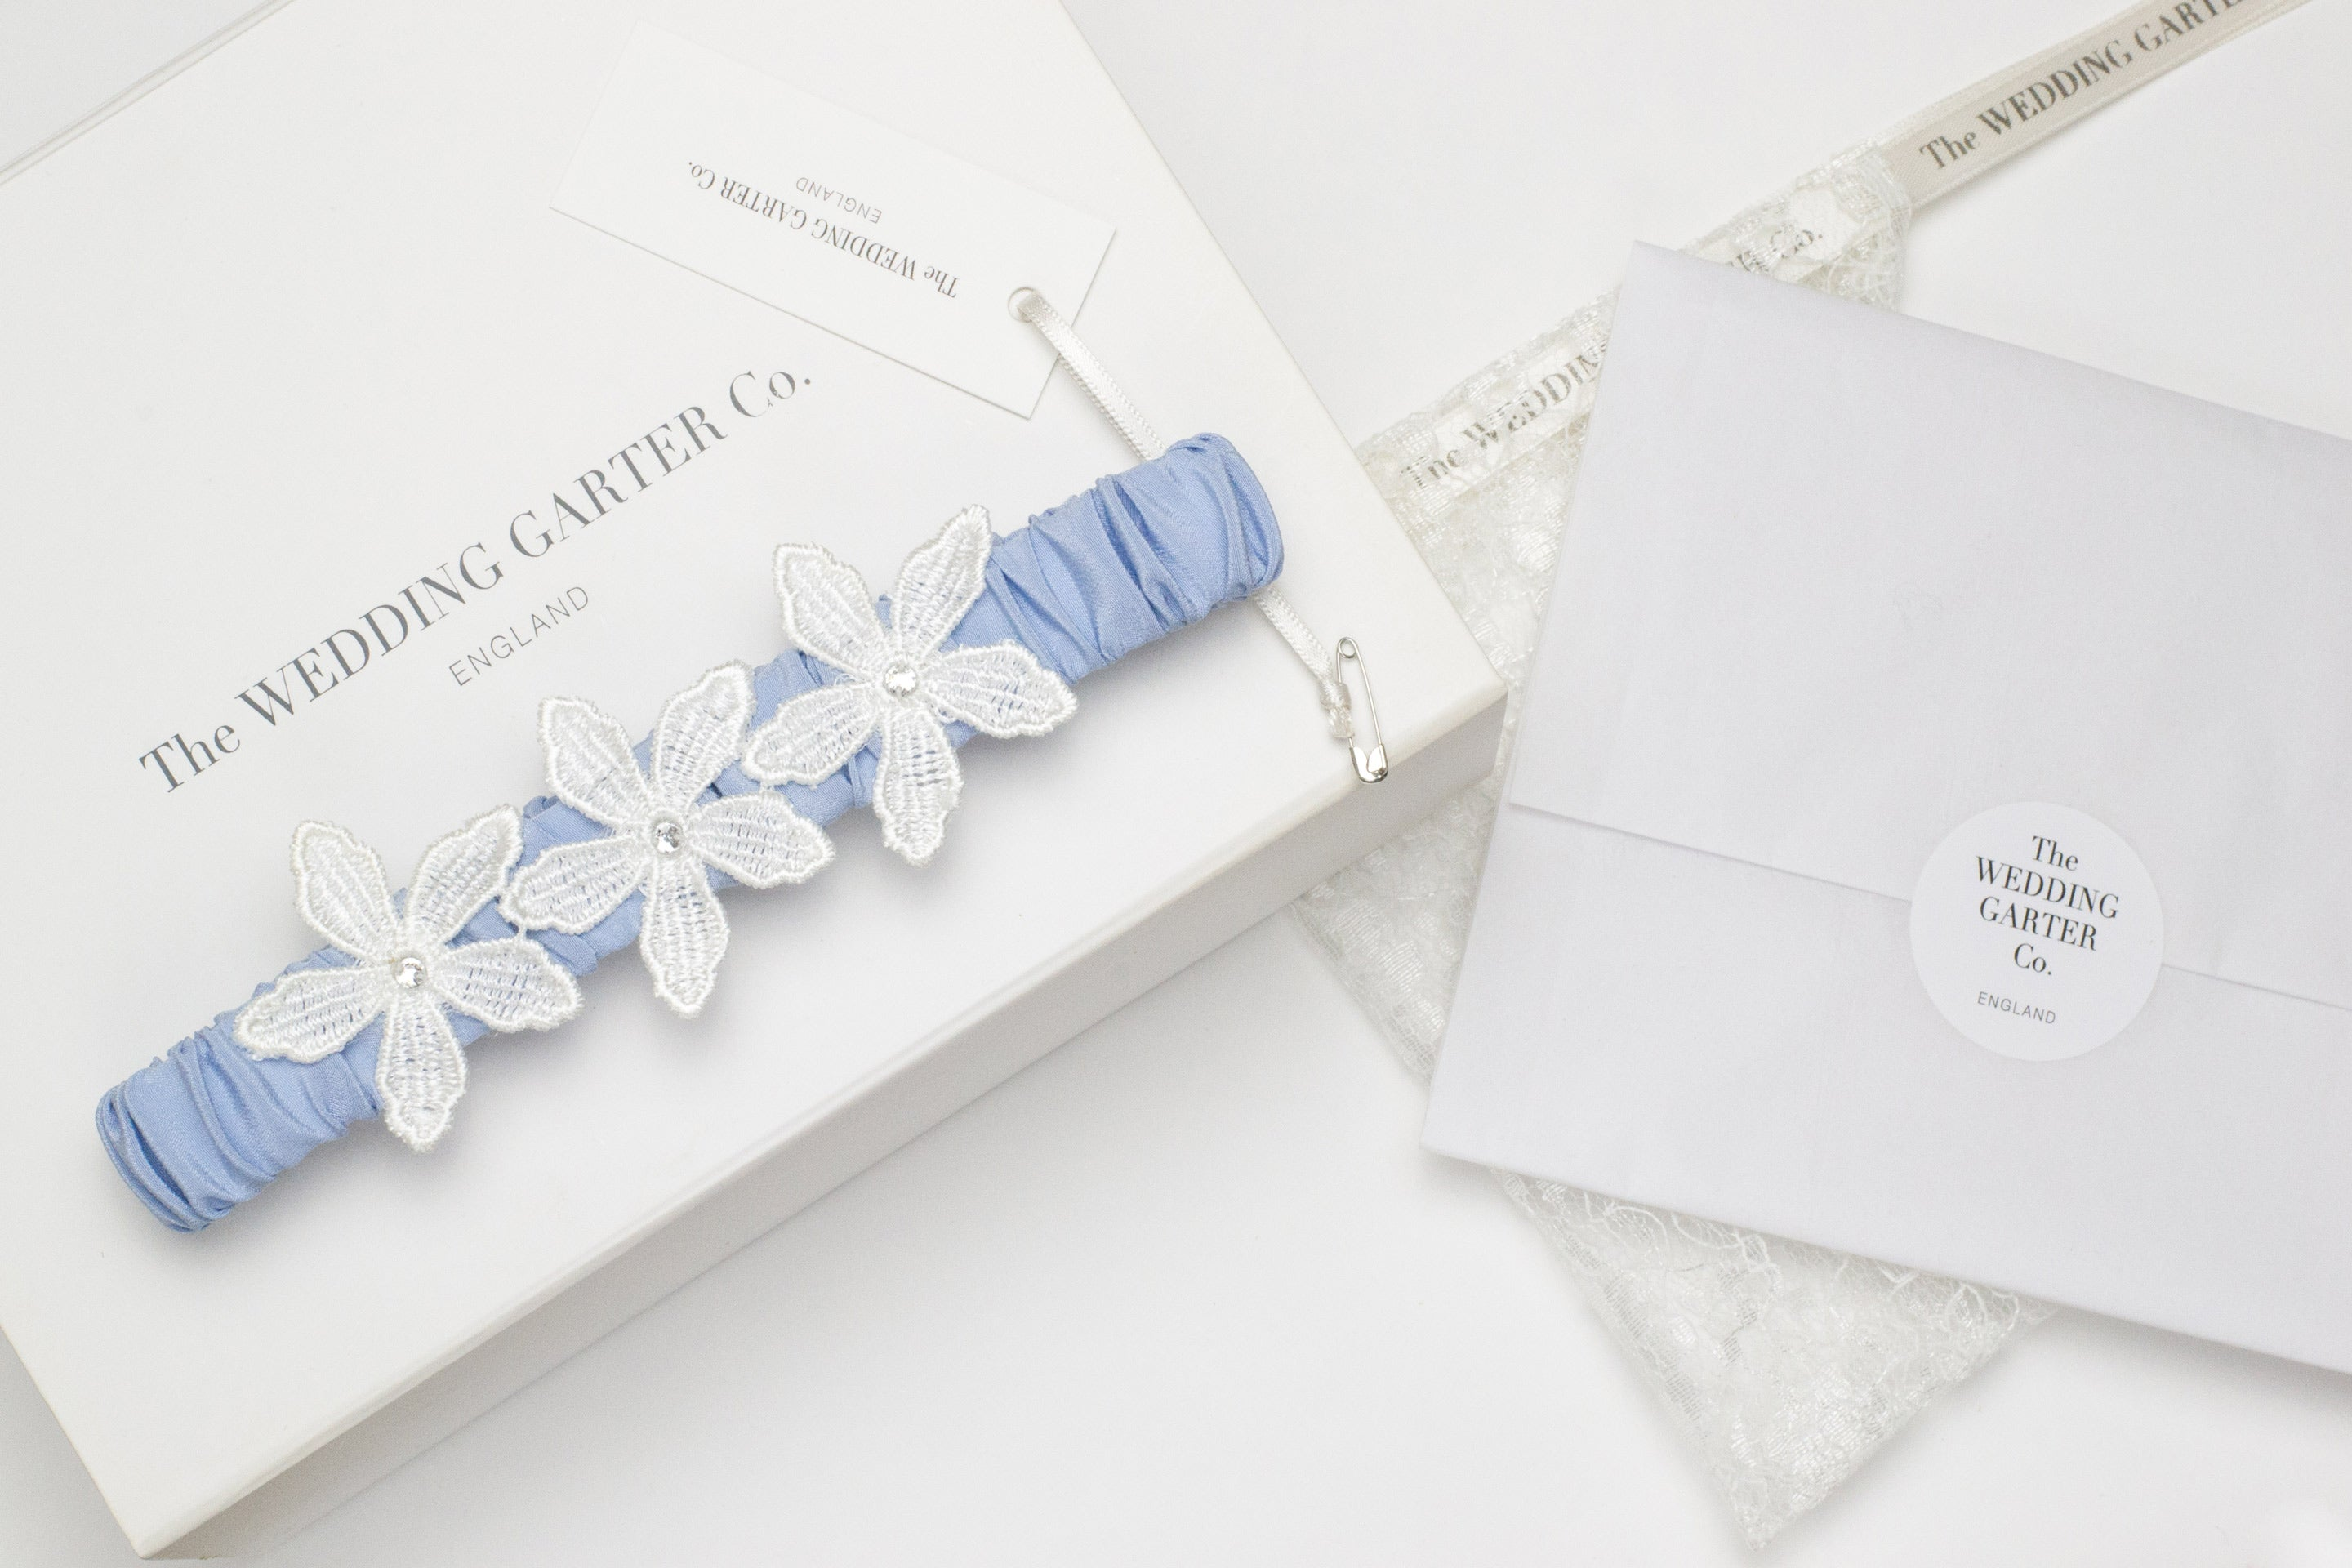 Blue bridal garter by The Wedding Garter Co.